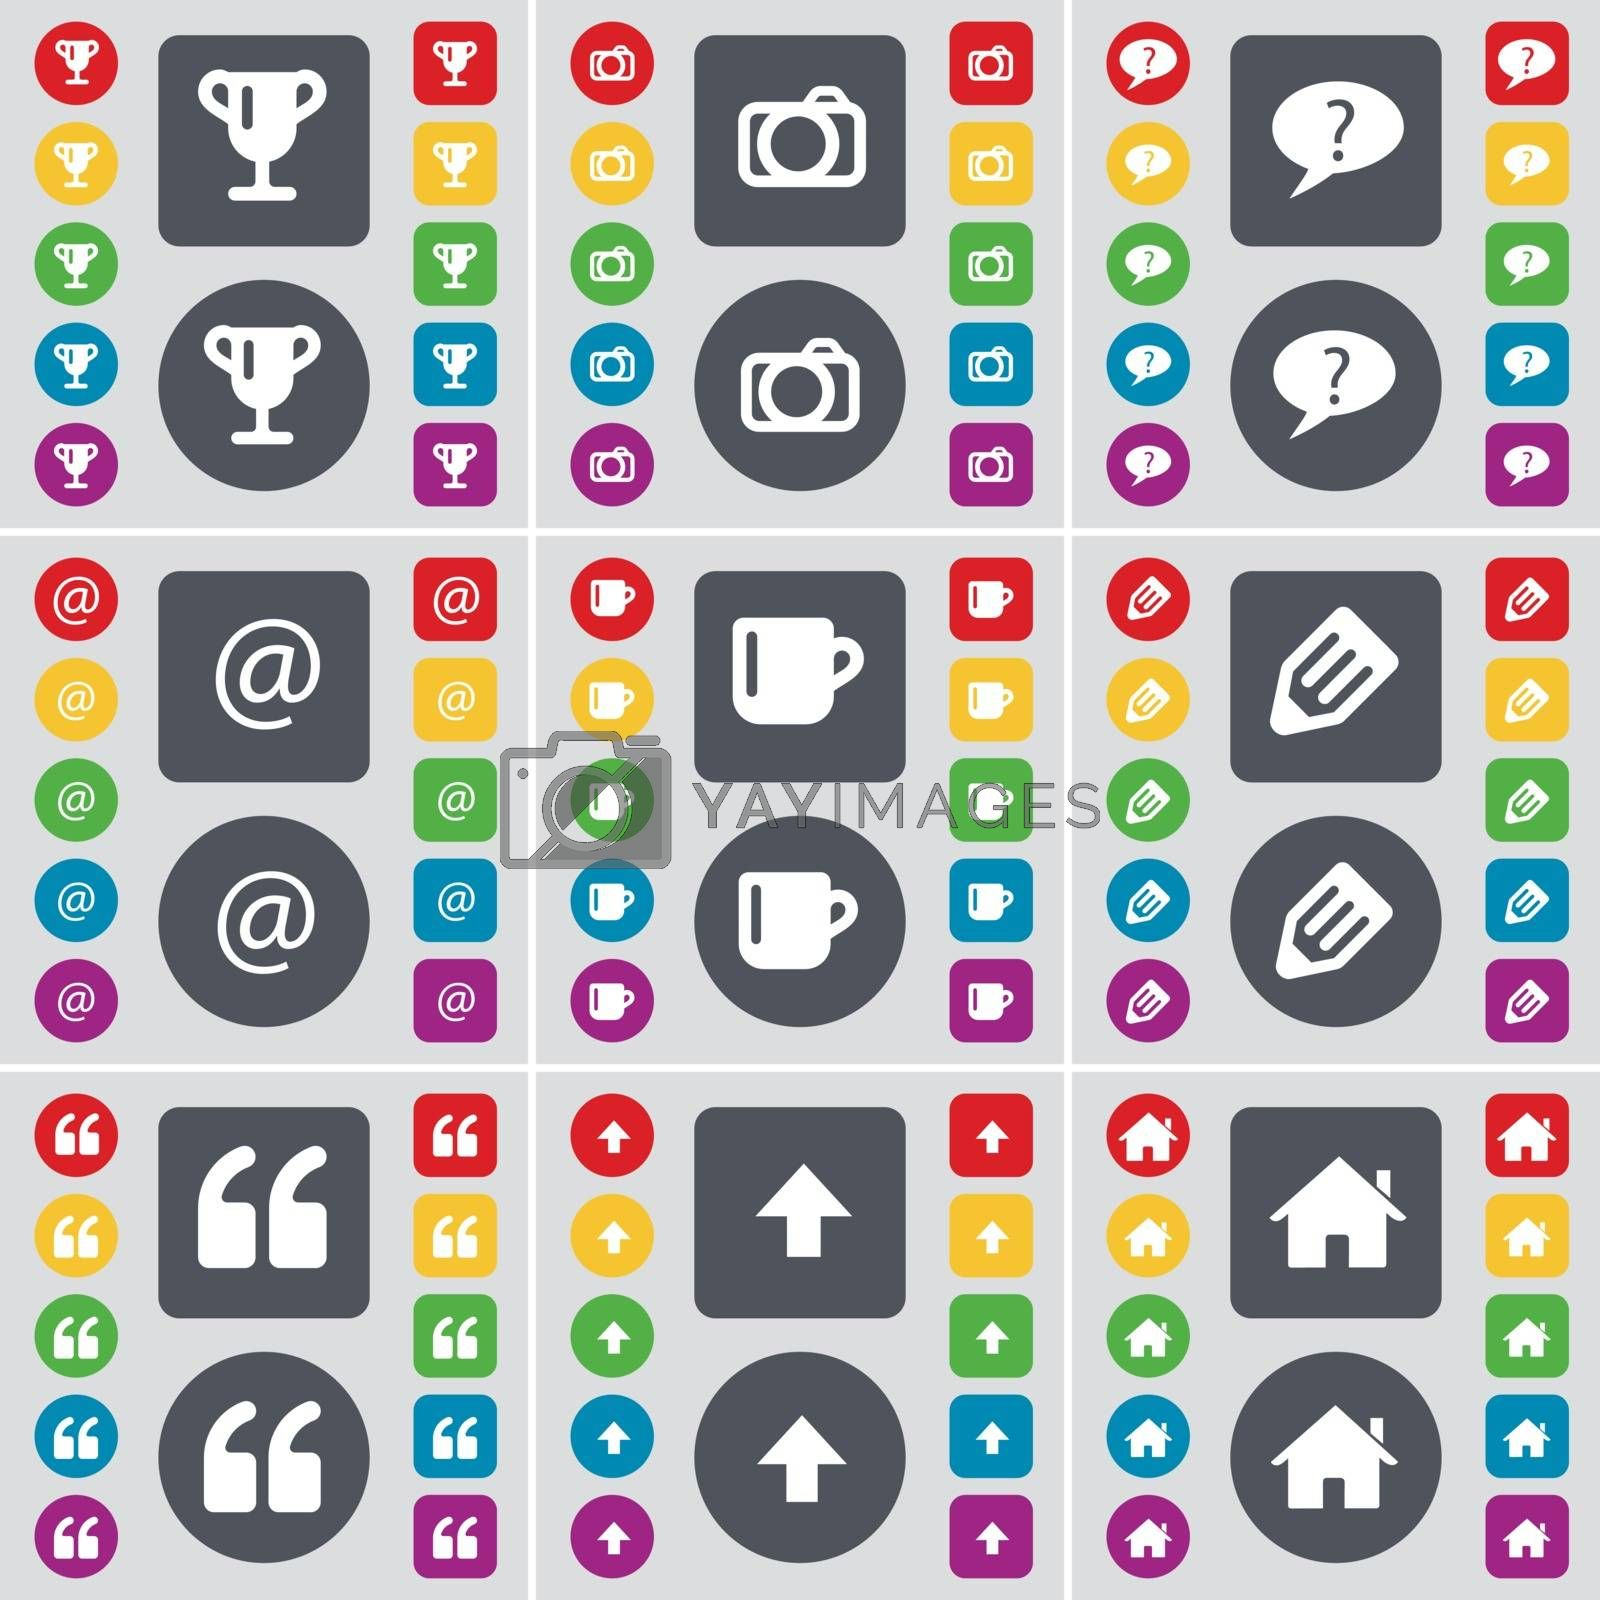 Royalty free image of Cup, Camera, Chat bubble, Mail, Cup, Pencil, Quotation mark, Arrow up, House icon symbol. A large set of flat, colored buttons for your design. Vector by serhii_lohvyniuk